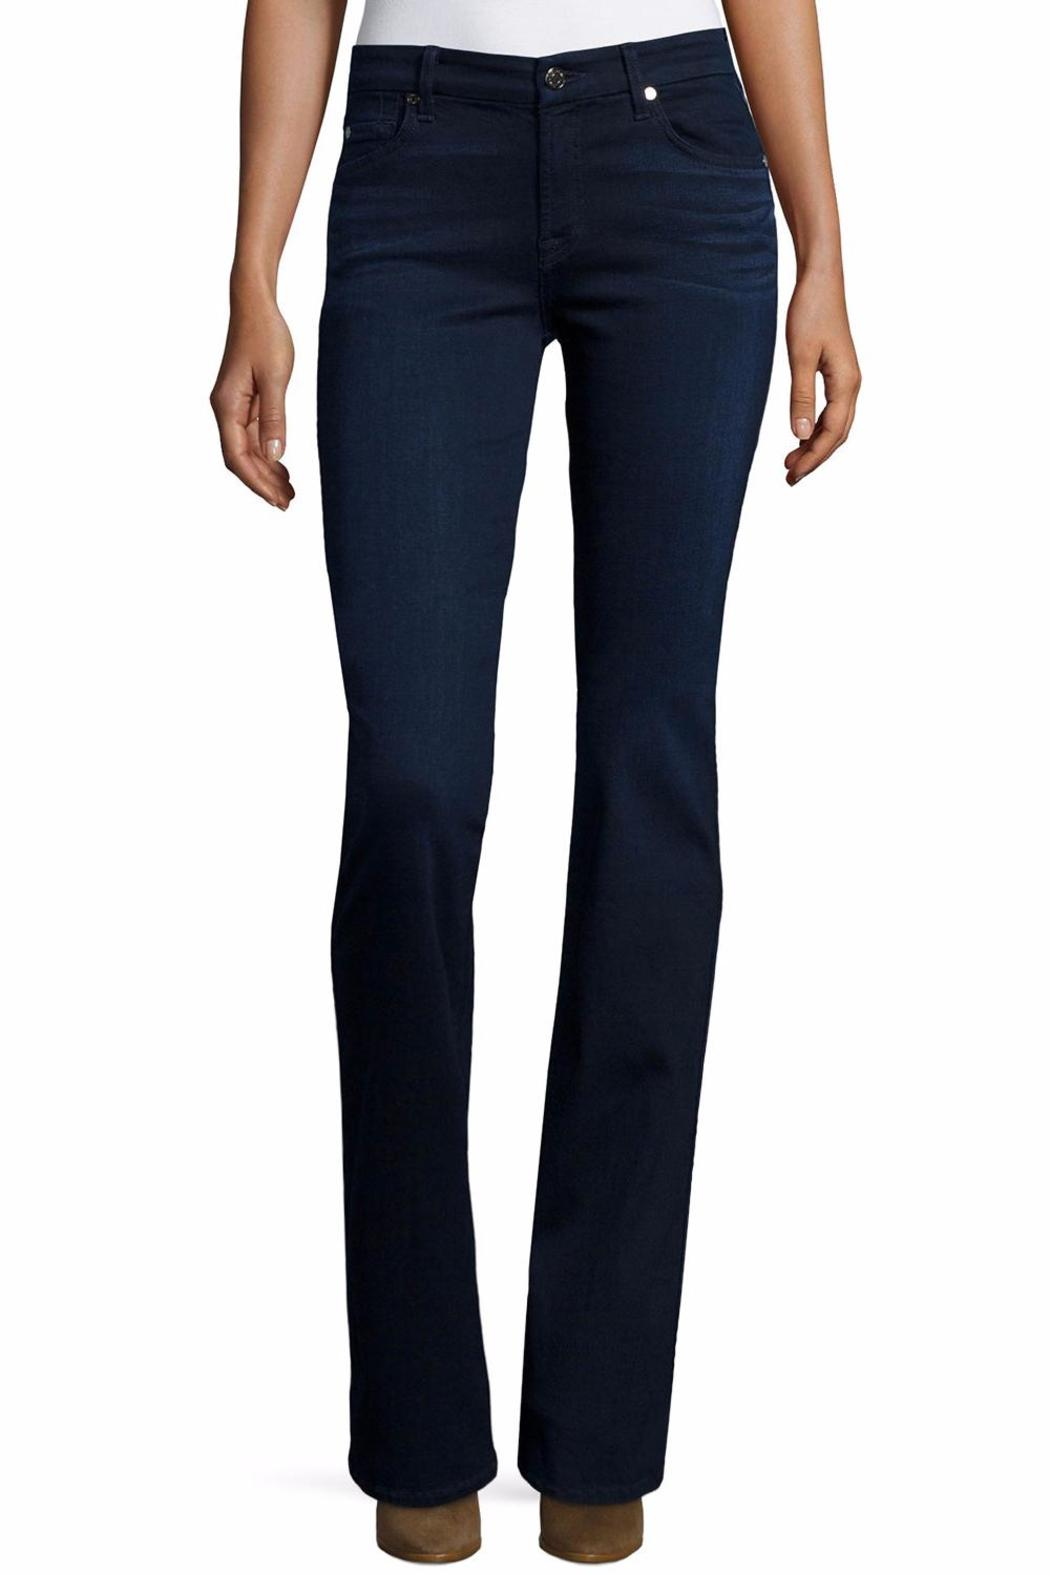 7 For all Mankind Form Fitted Bootcut - Front Cropped Image